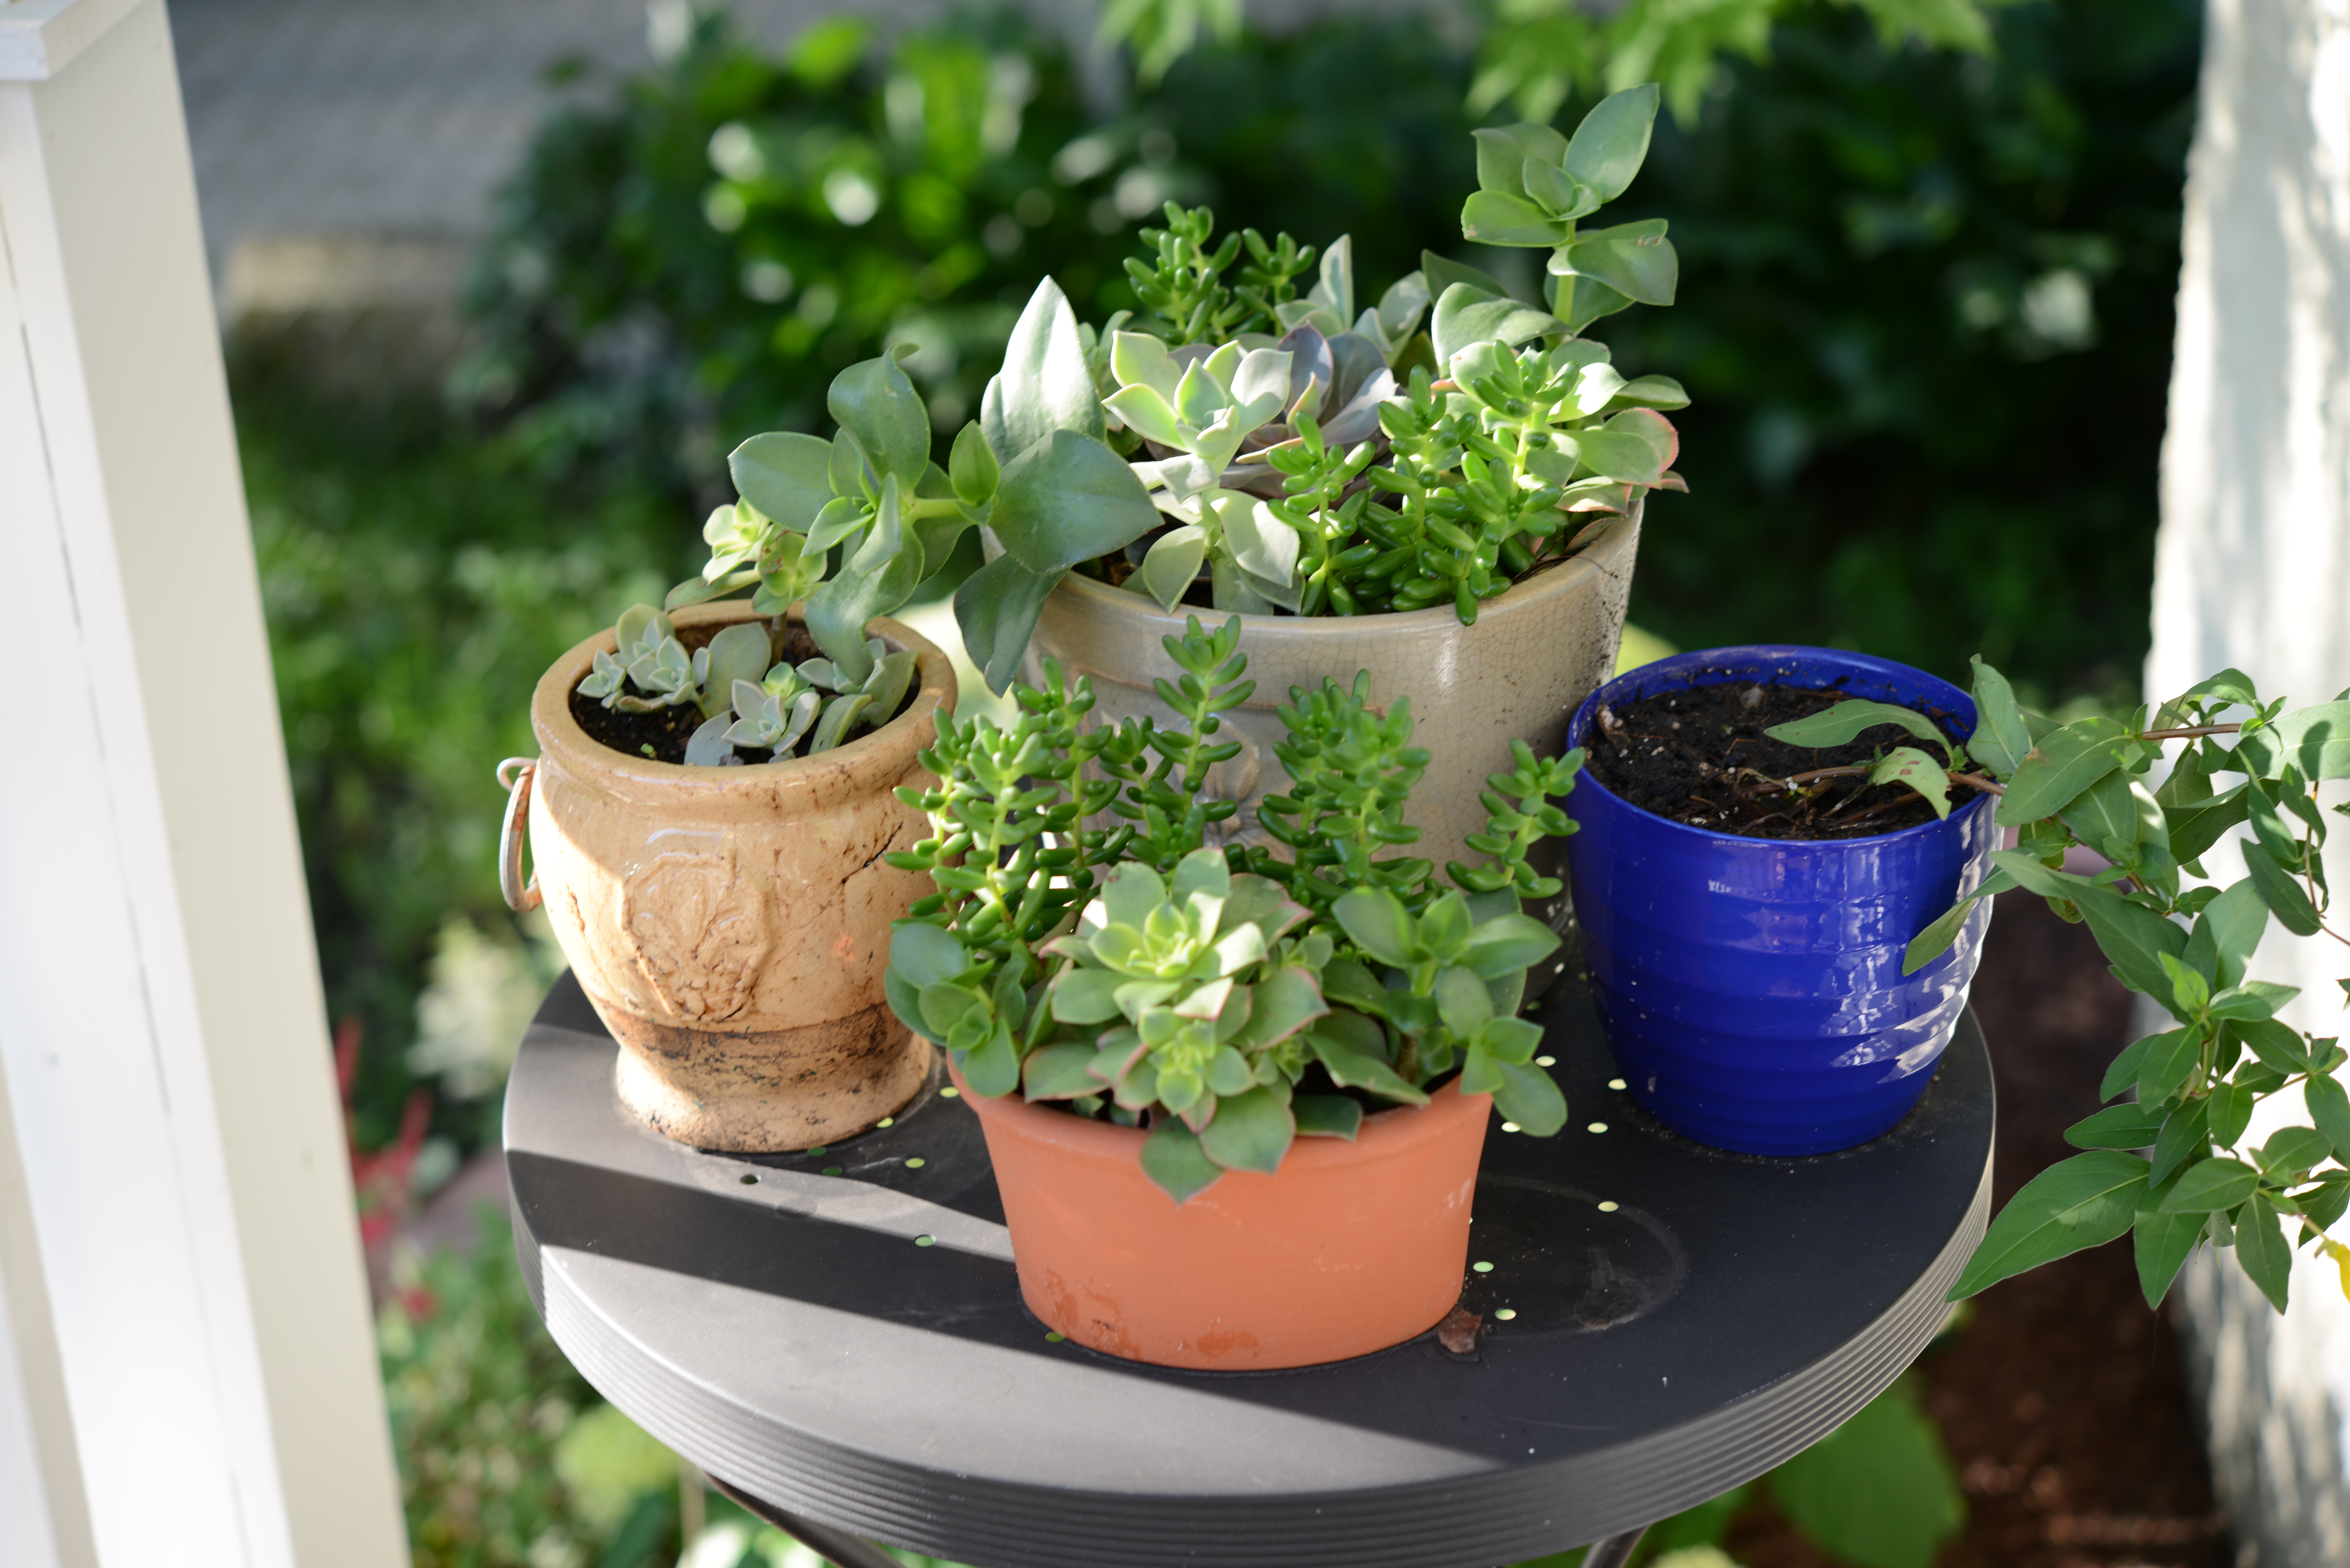 Simple gardening tips regrowing succulents the simple for How to keep succulents alive indoors